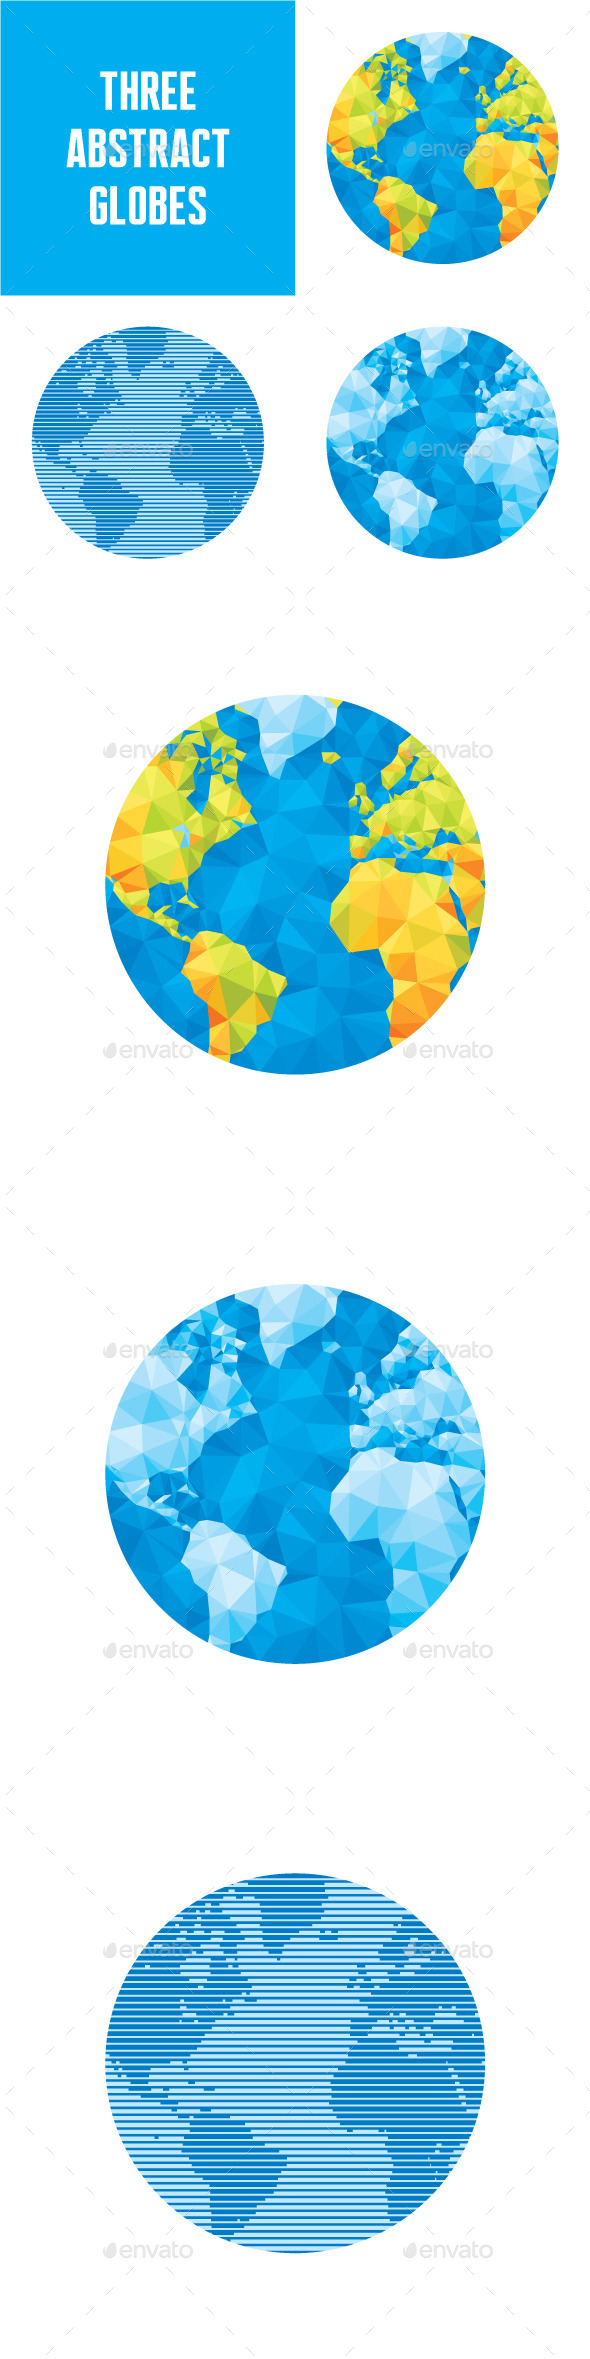 3 Abstract Vector Globes Illustrations - Travel Conceptual